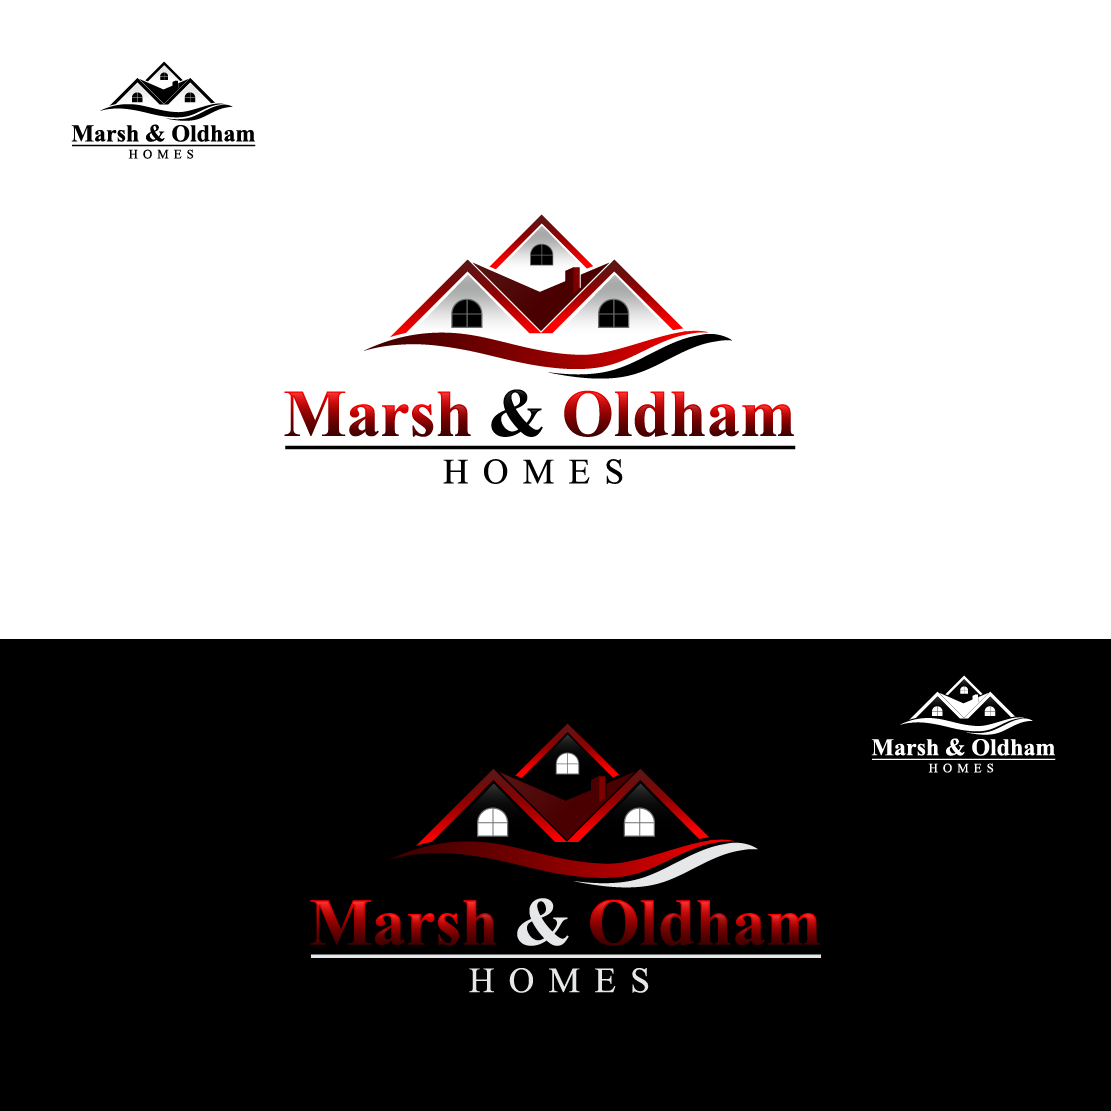 Logo Design by Private User - Entry No. 16 in the Logo Design Contest Artistic Logo Design for Marsh & Oldham Homes.